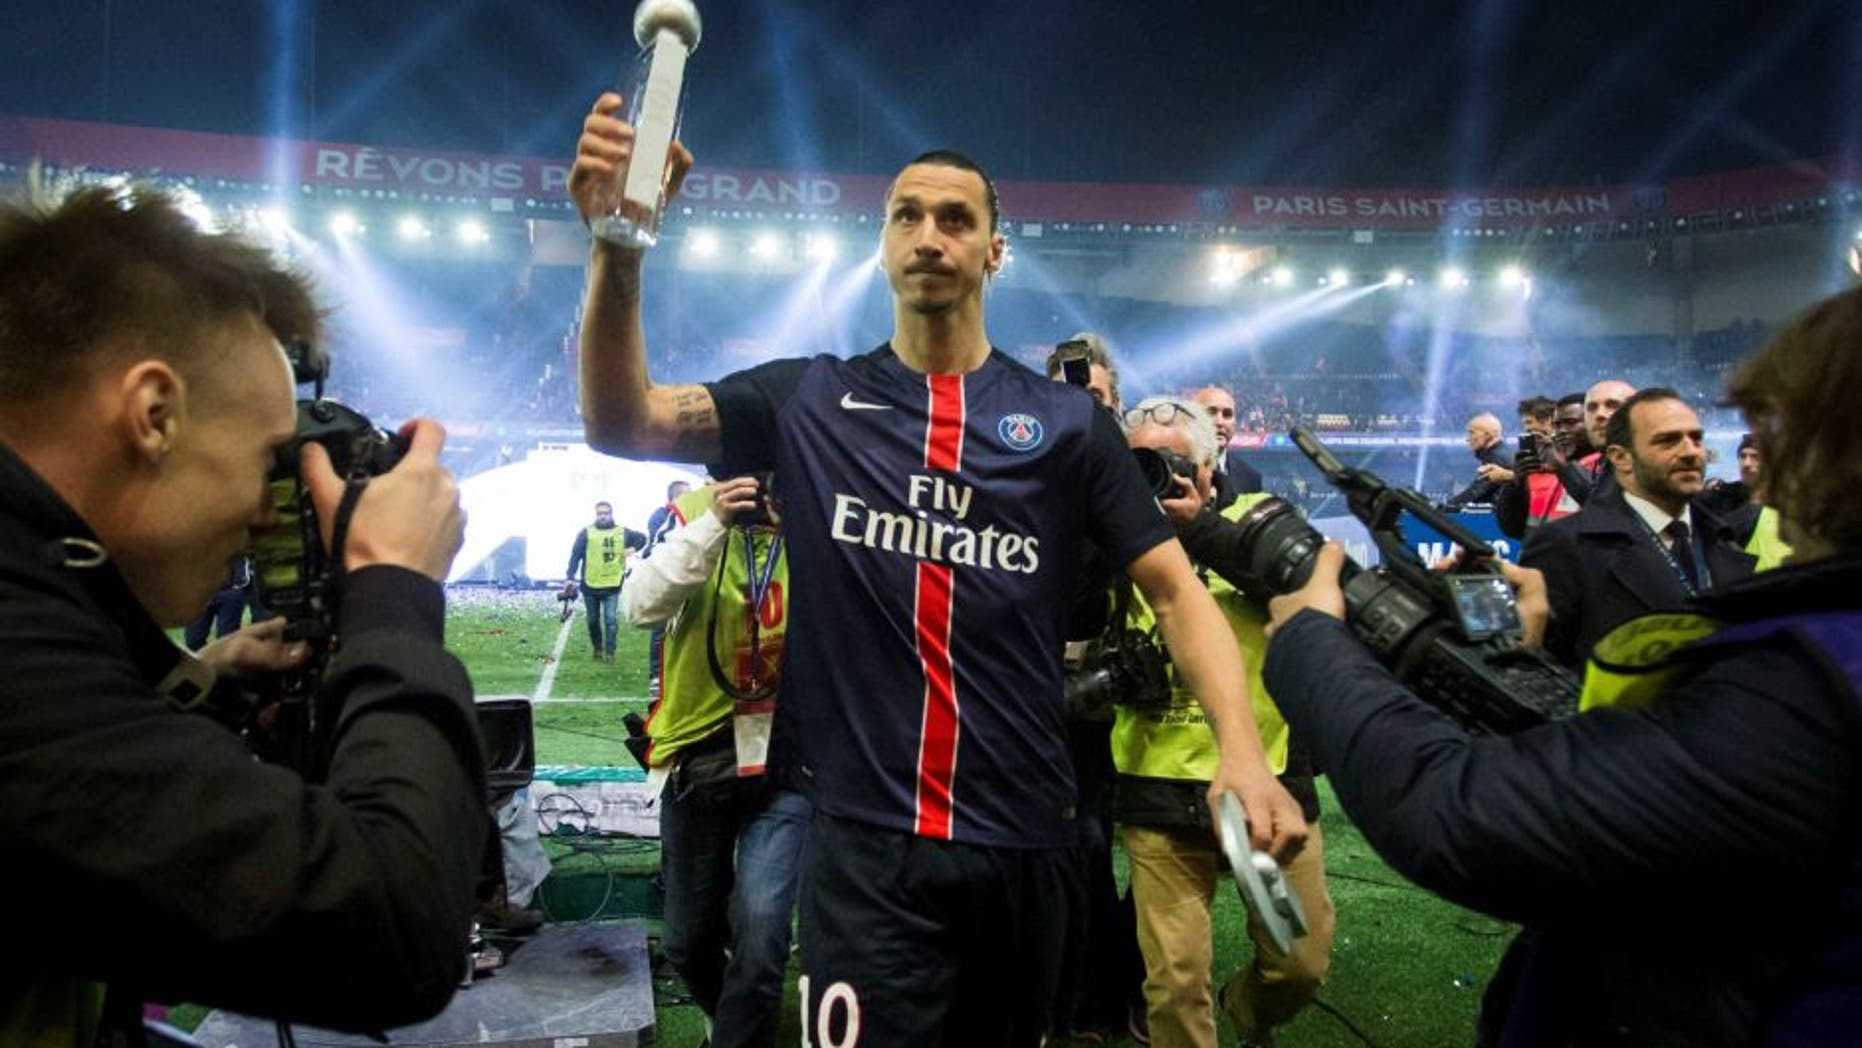 PARIS, FRANCE - MAY 14: Paris Saint-Germain's Swedish forward Zlatan Ibrahimovic holds the trophy after winning the French L1 title at the end of the French L1 football match between Paris Saint-Germain (PSG) vs Nantes on May 14, 2016 at the Parc des Princes stadium in Paris, France. (Photo by Geoffroy Van der Hasselt/Anadolu Agency/Getty Images)